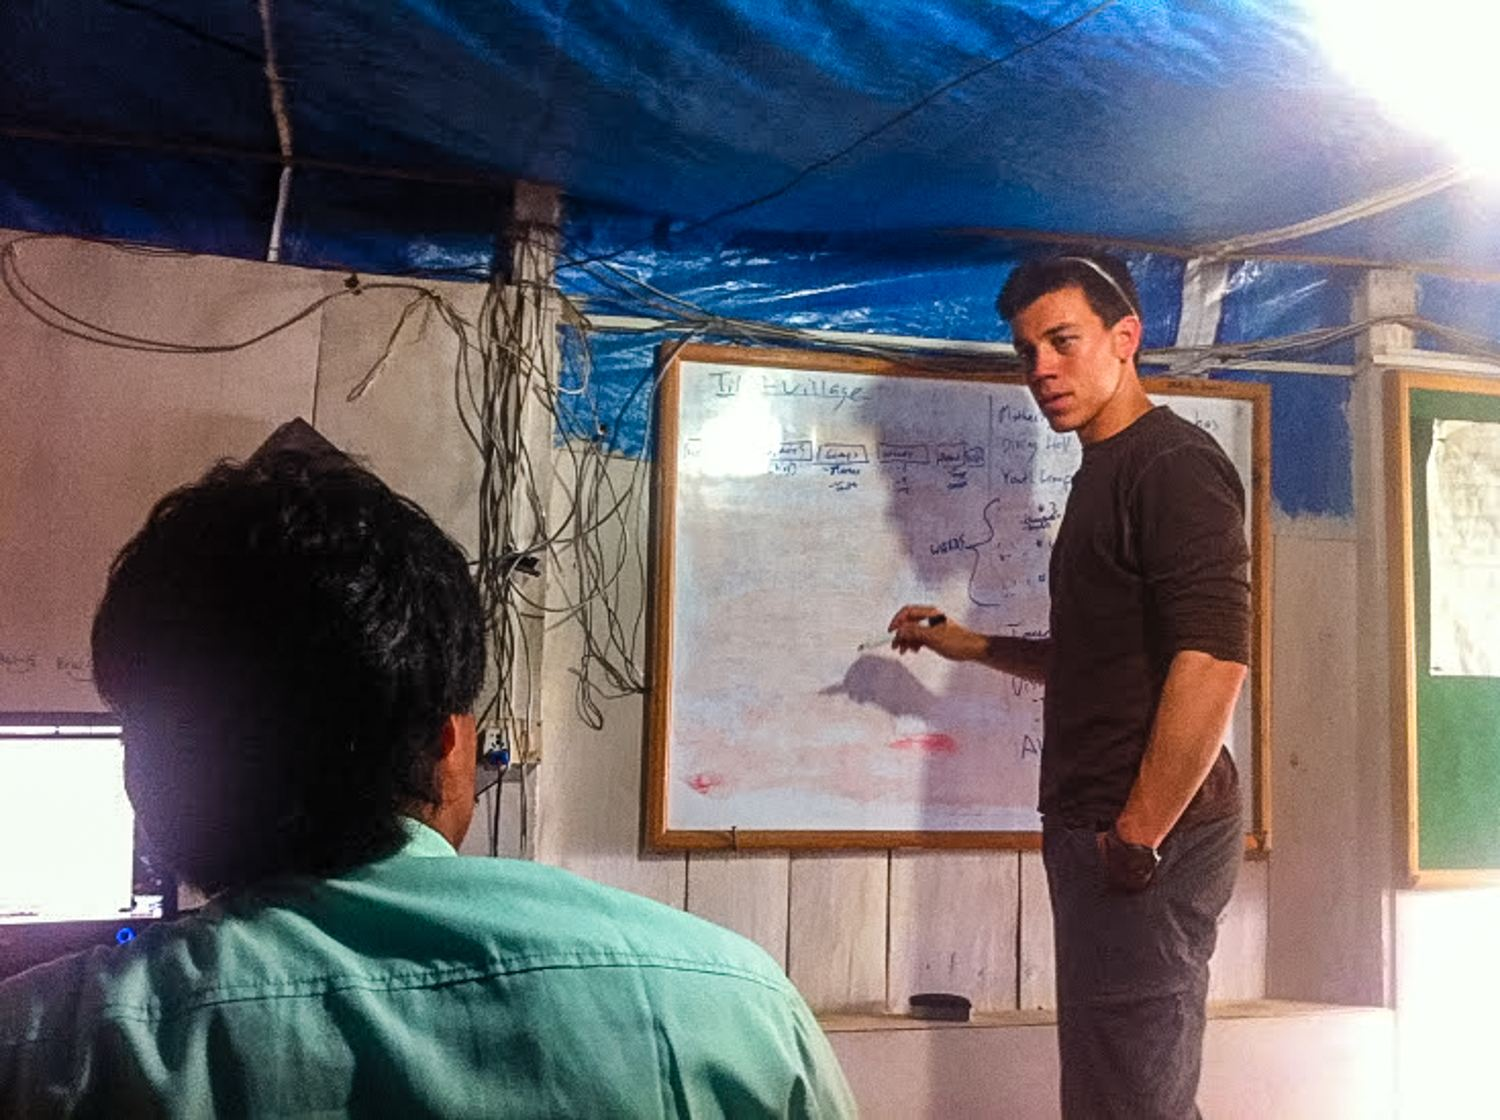 Mark Horoszowski on his personal Experteering trip in Nepal in 2011 where he was supporting the Nepal Wireless Initiative.